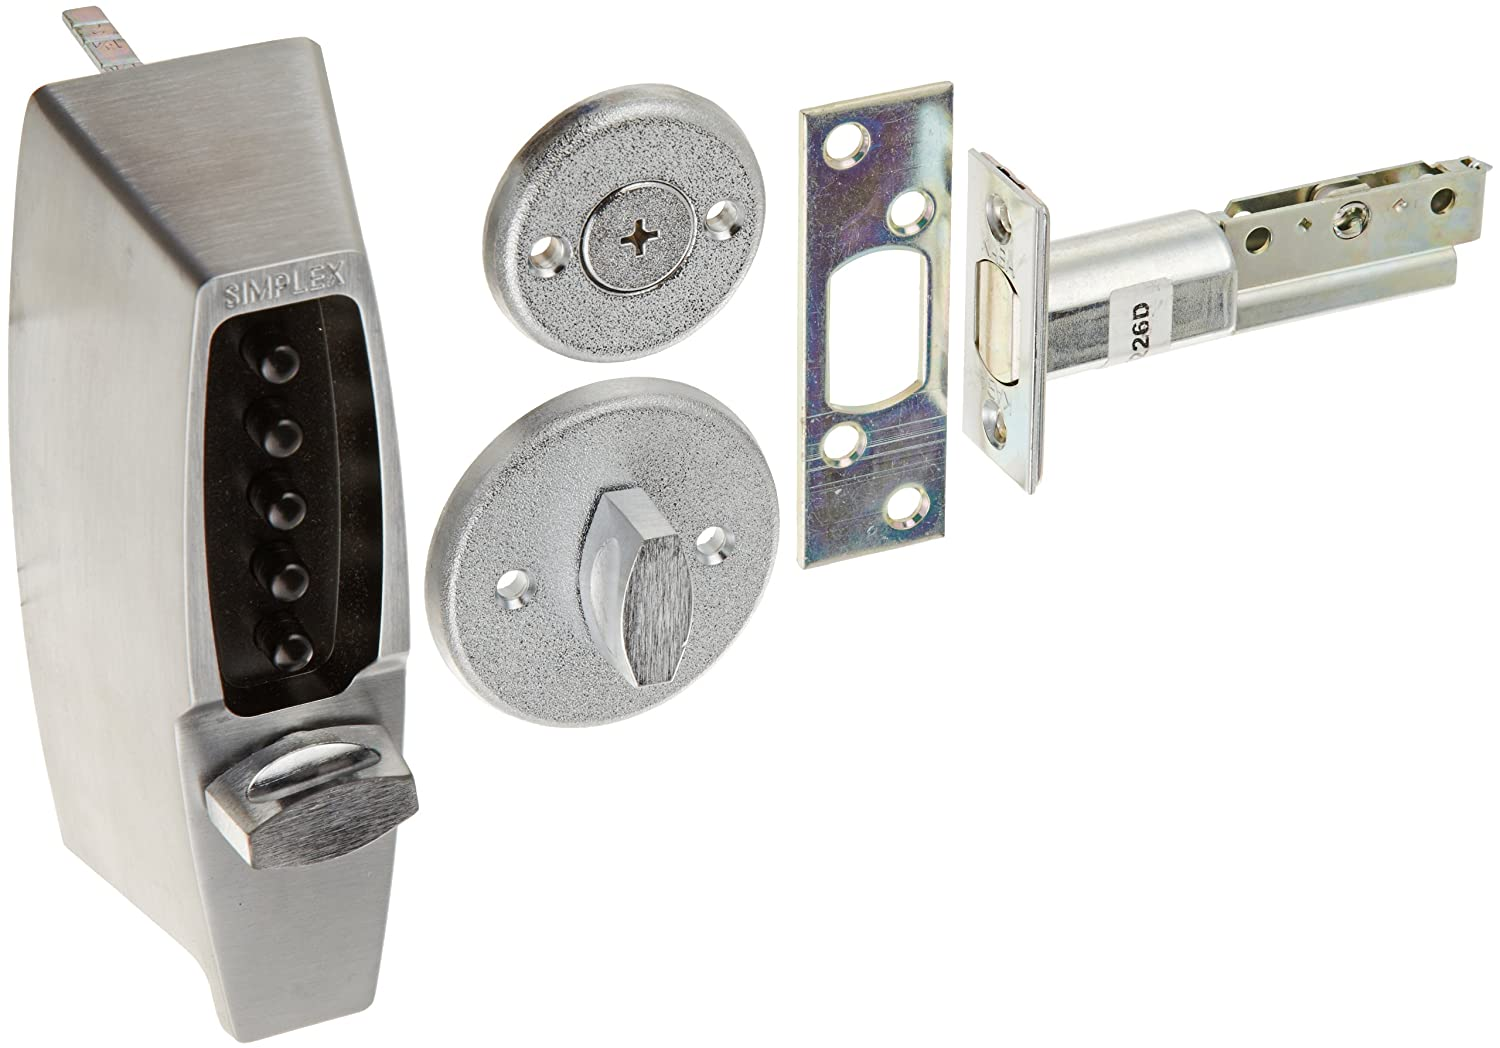 B00EA9H2EY Kaba Simplex 7100 Series Metal Mechanical Pushbutton Auxiliary Lock with Thumbturn, 25mm Tubular Deadbolt, Flat Front Face Plate, 70mm Backset, Satin Chrome Finish 81FJuSdgJbL._SL1500_